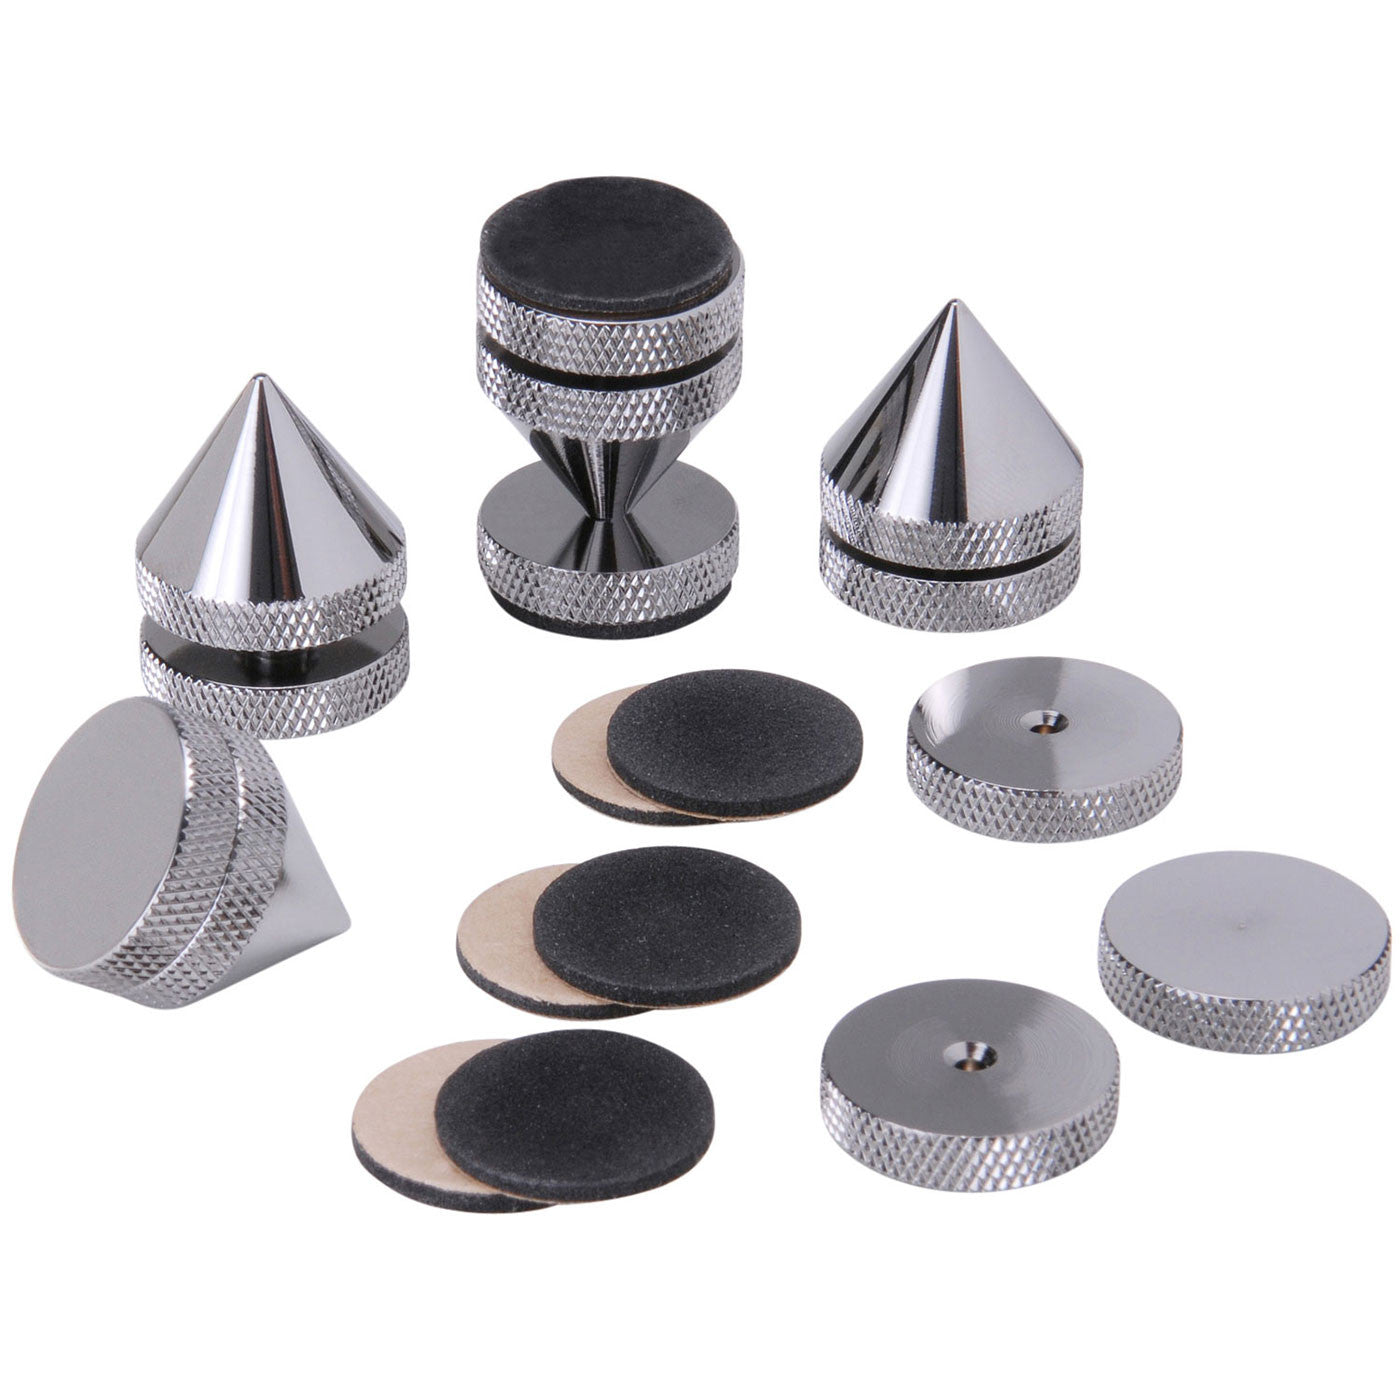 Height Adjustable Isolation Cones - Spikes - Black Chrome